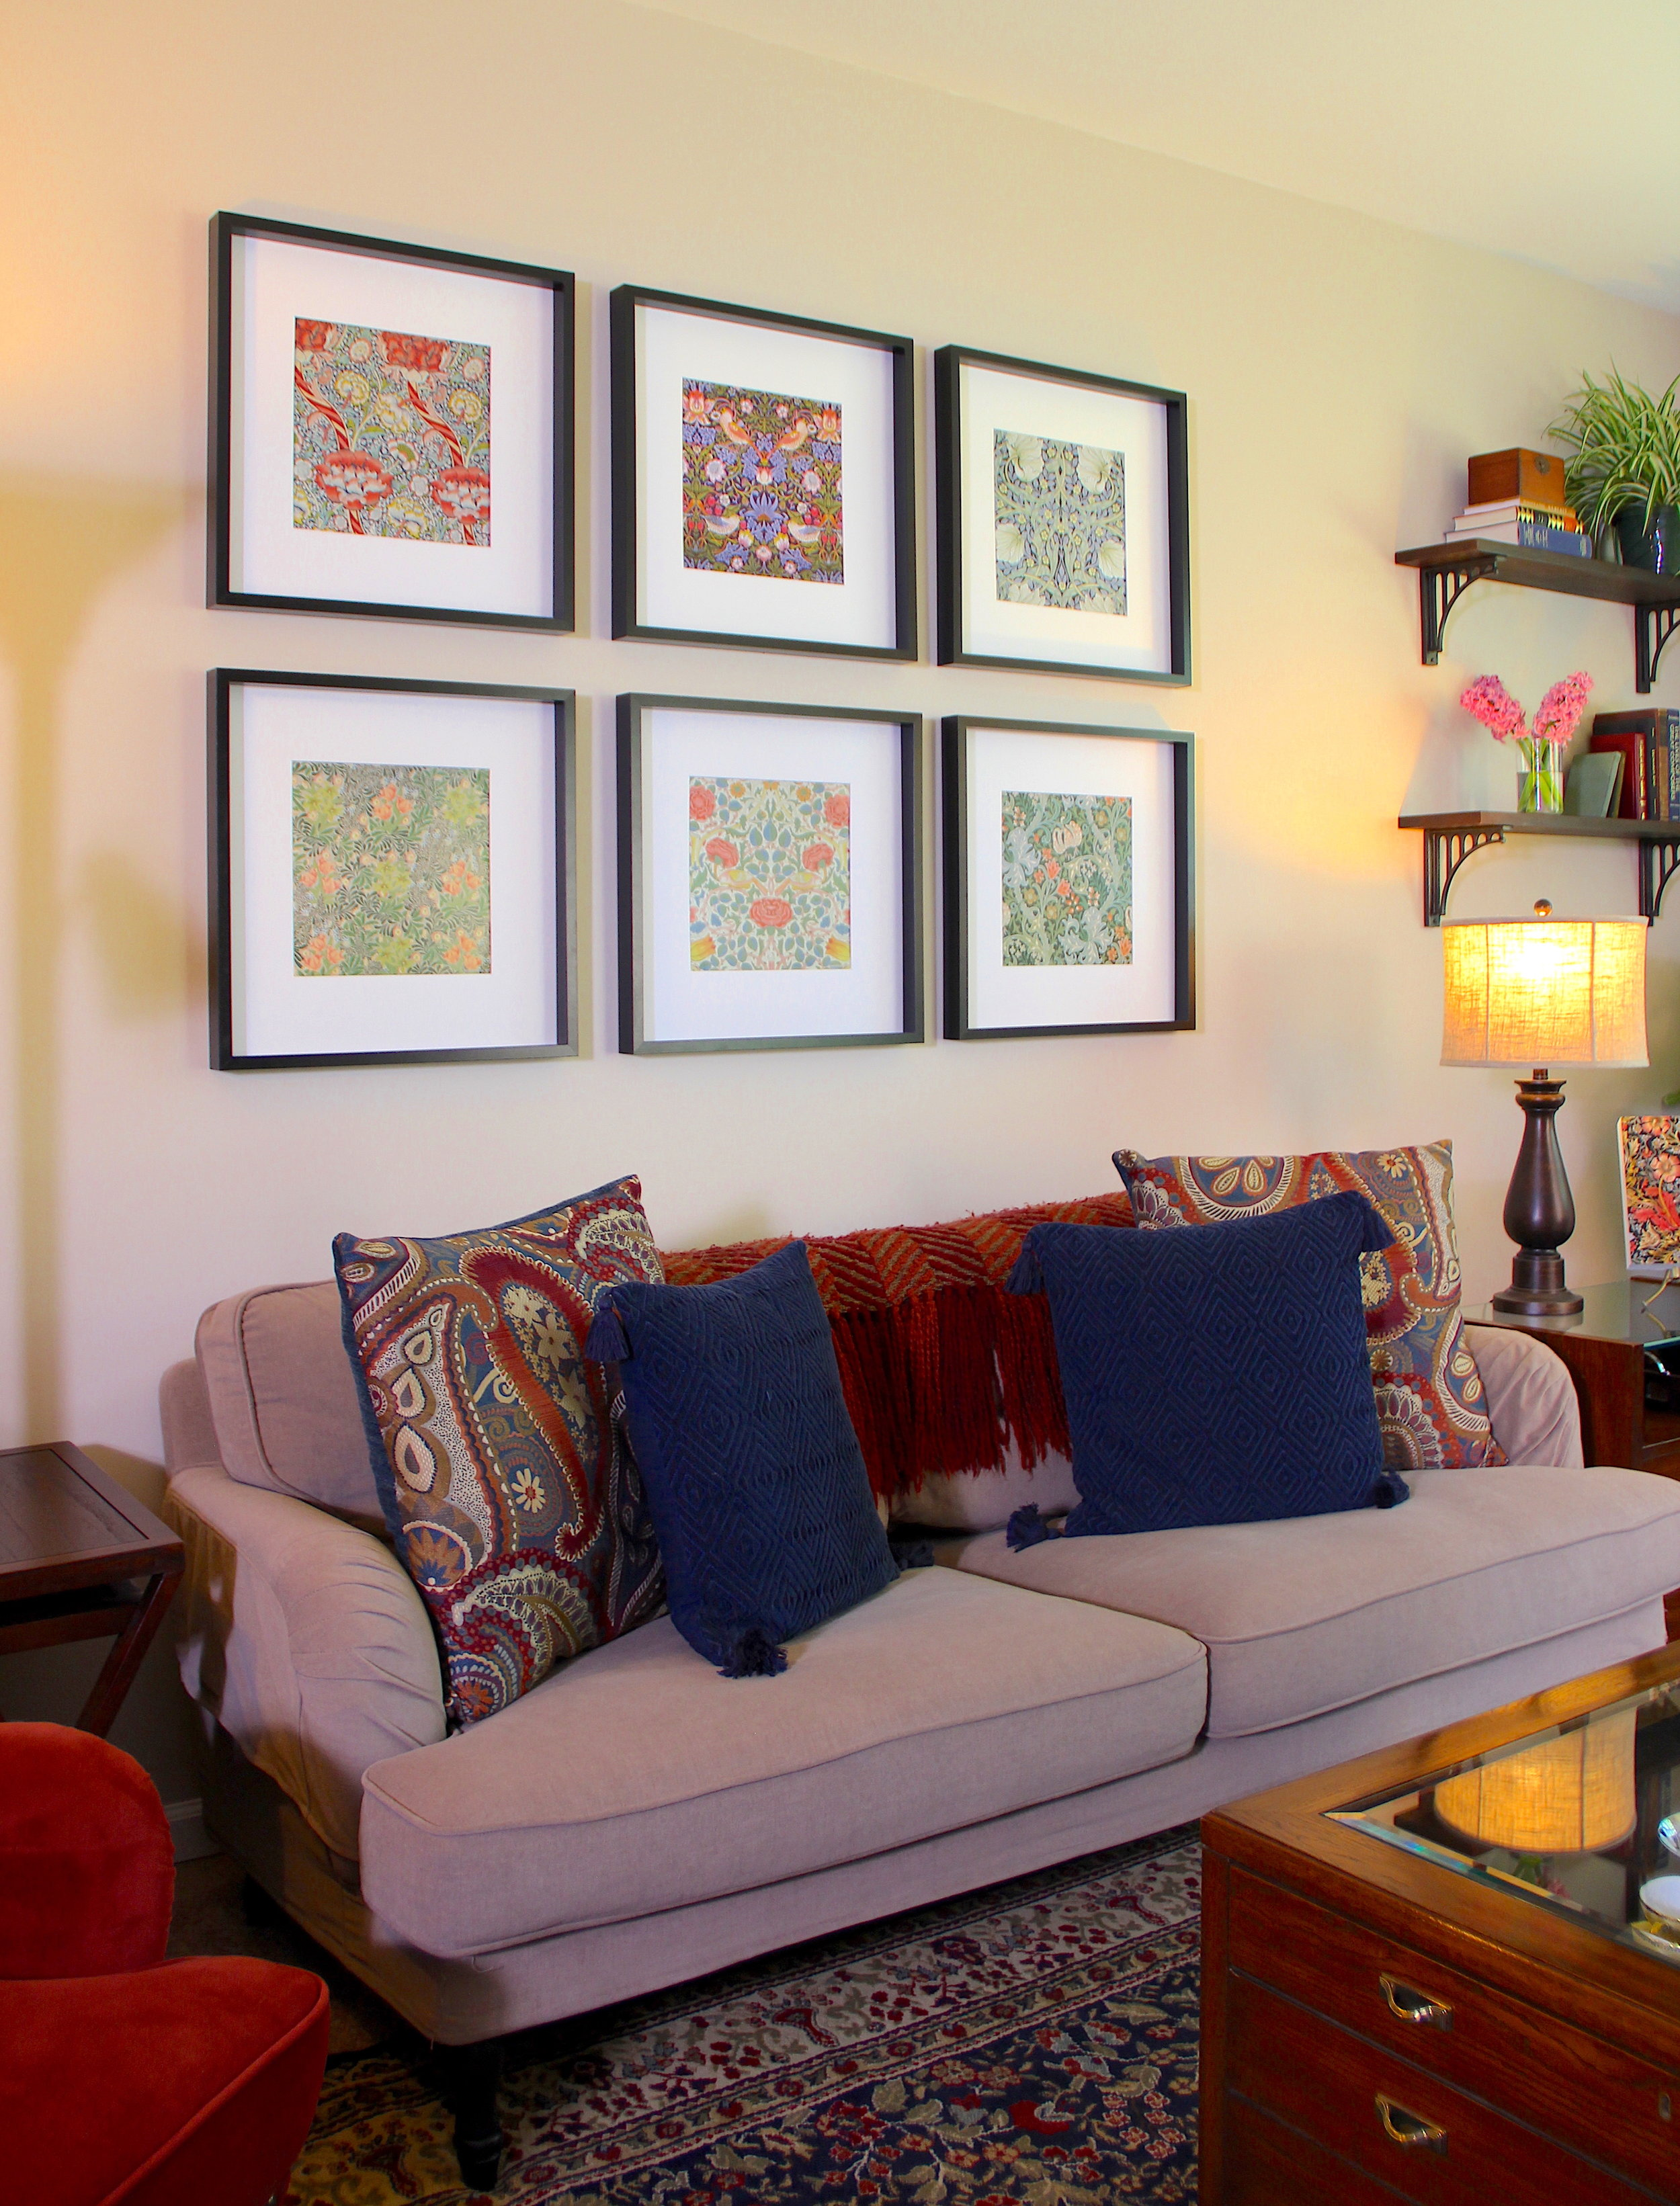 Ikea RIBBA Frames  with Morris prints (see  post ),  Pier1 Zano Brown Nesting Tables ,  Pier1 Oversized Paisley Pillows ,  Pier1 Diamond Chenille Navy Pillows